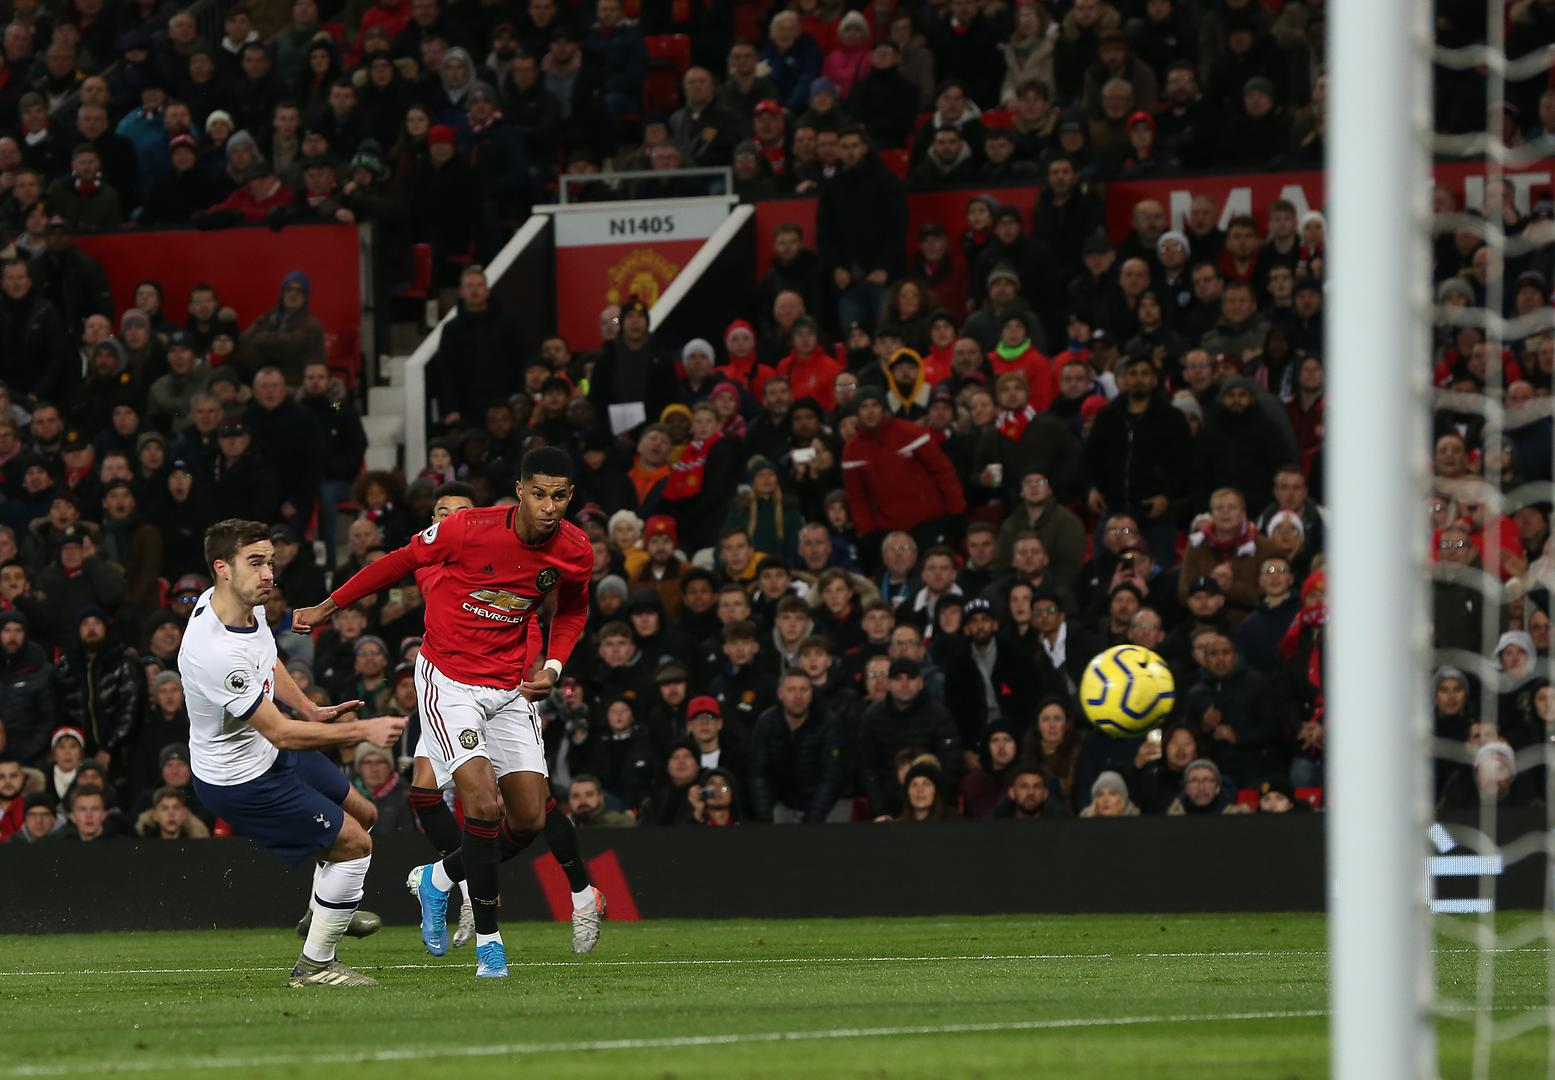 Marcus Rashford scores Manchester United's first goal against Tottenham